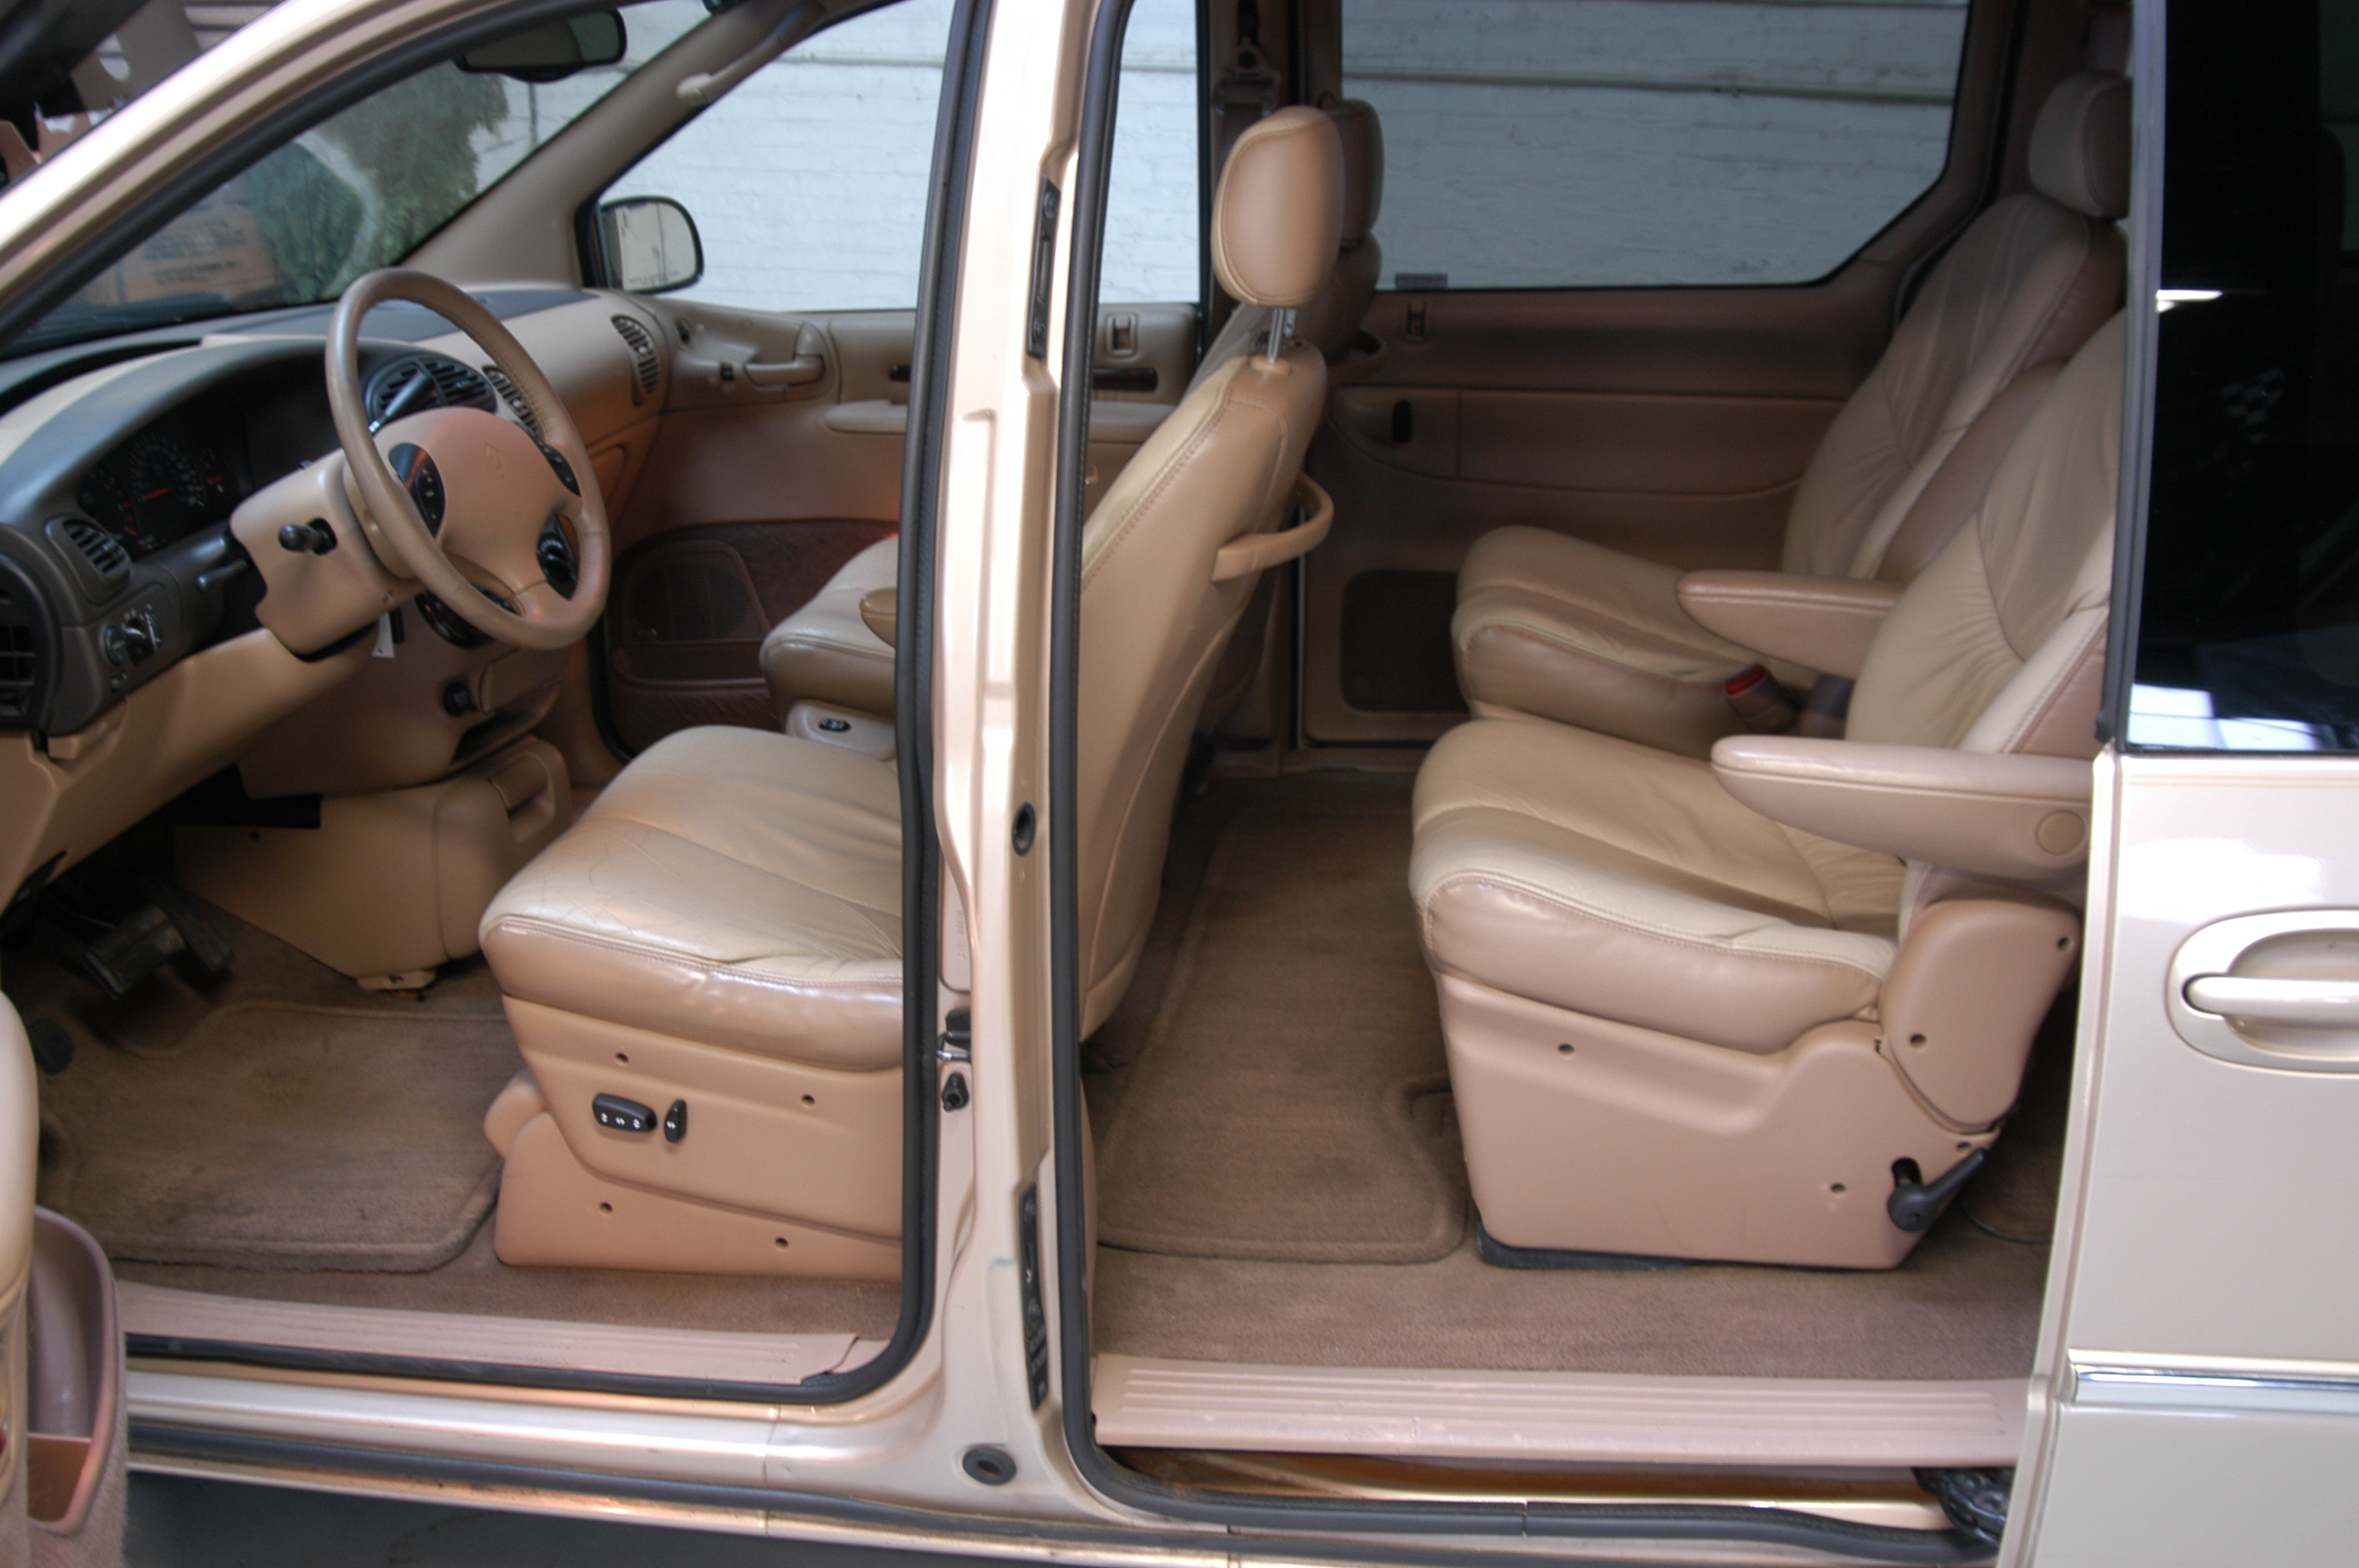 1998 chrysler town and country for 1999 chrysler town and country window problems